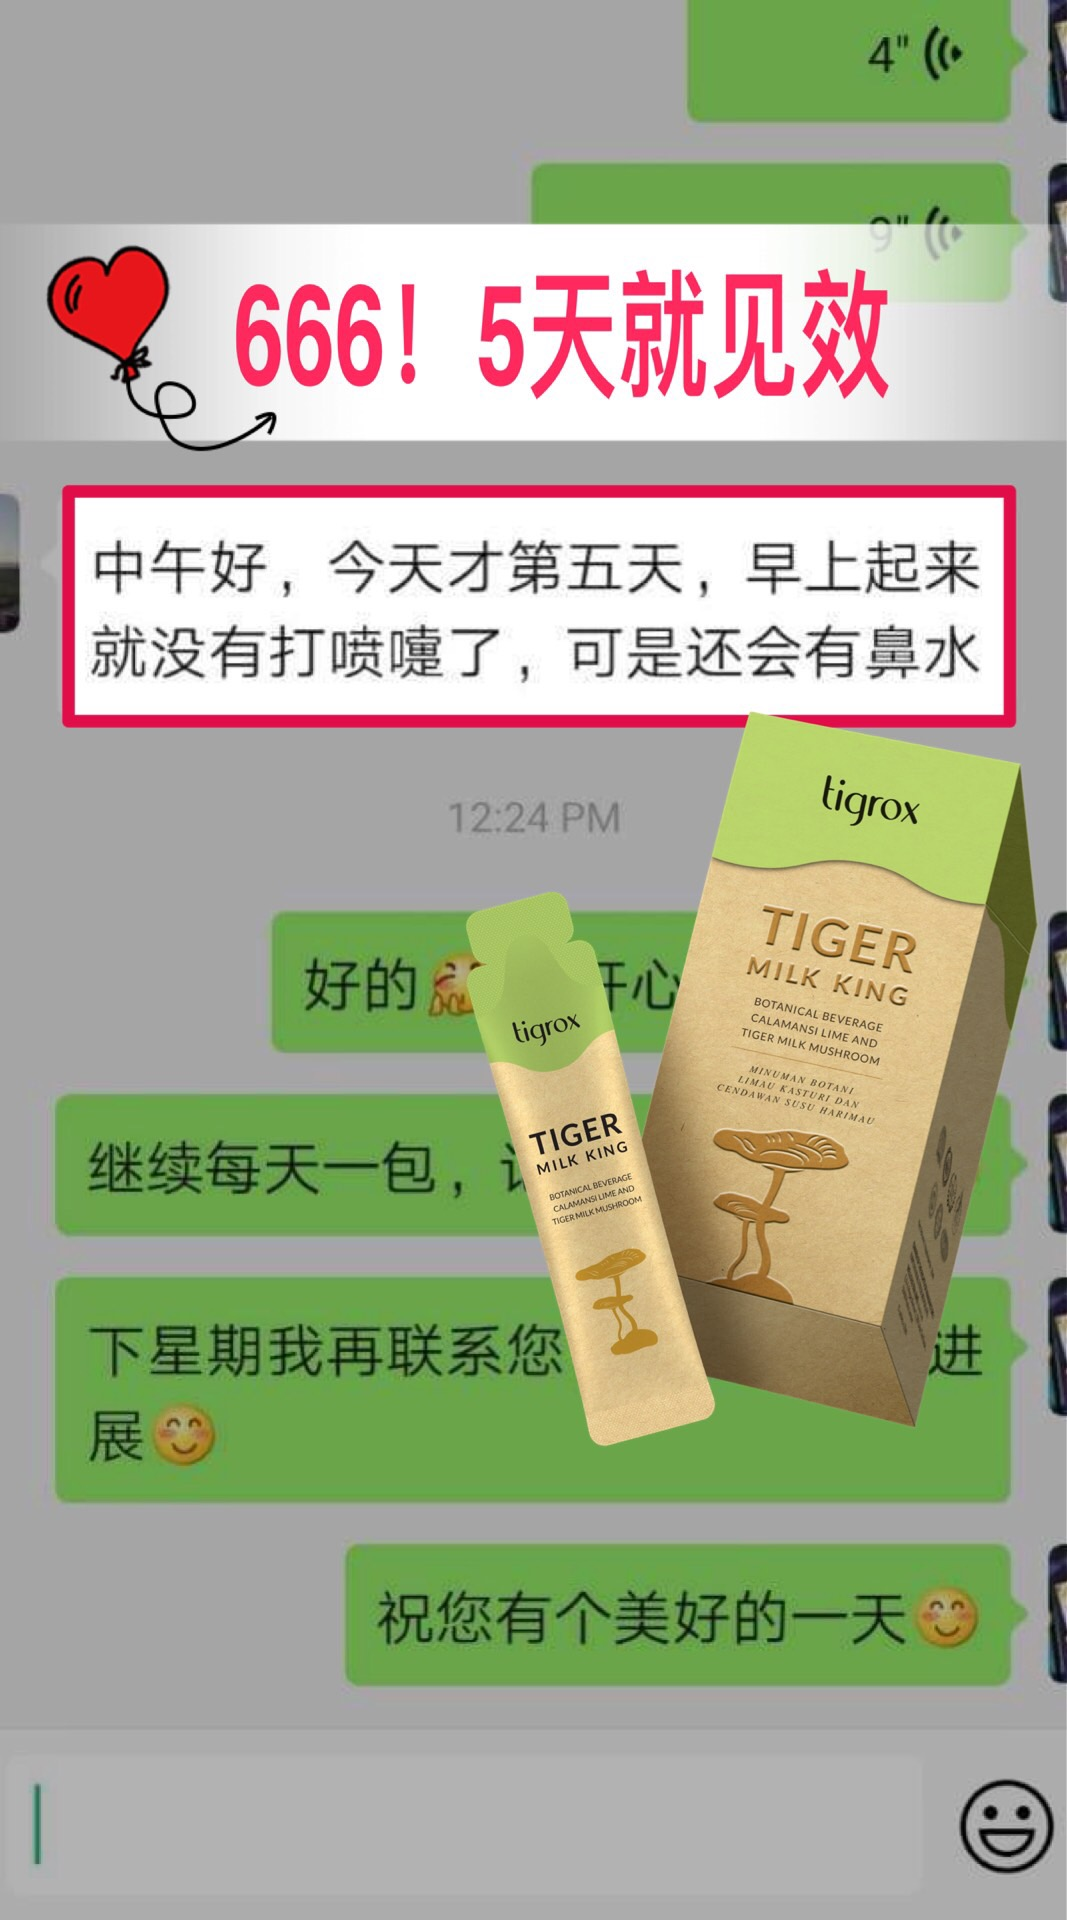 Wellous Tigrox Tiger Milk King Review Testimonial MyVpsGroup-13